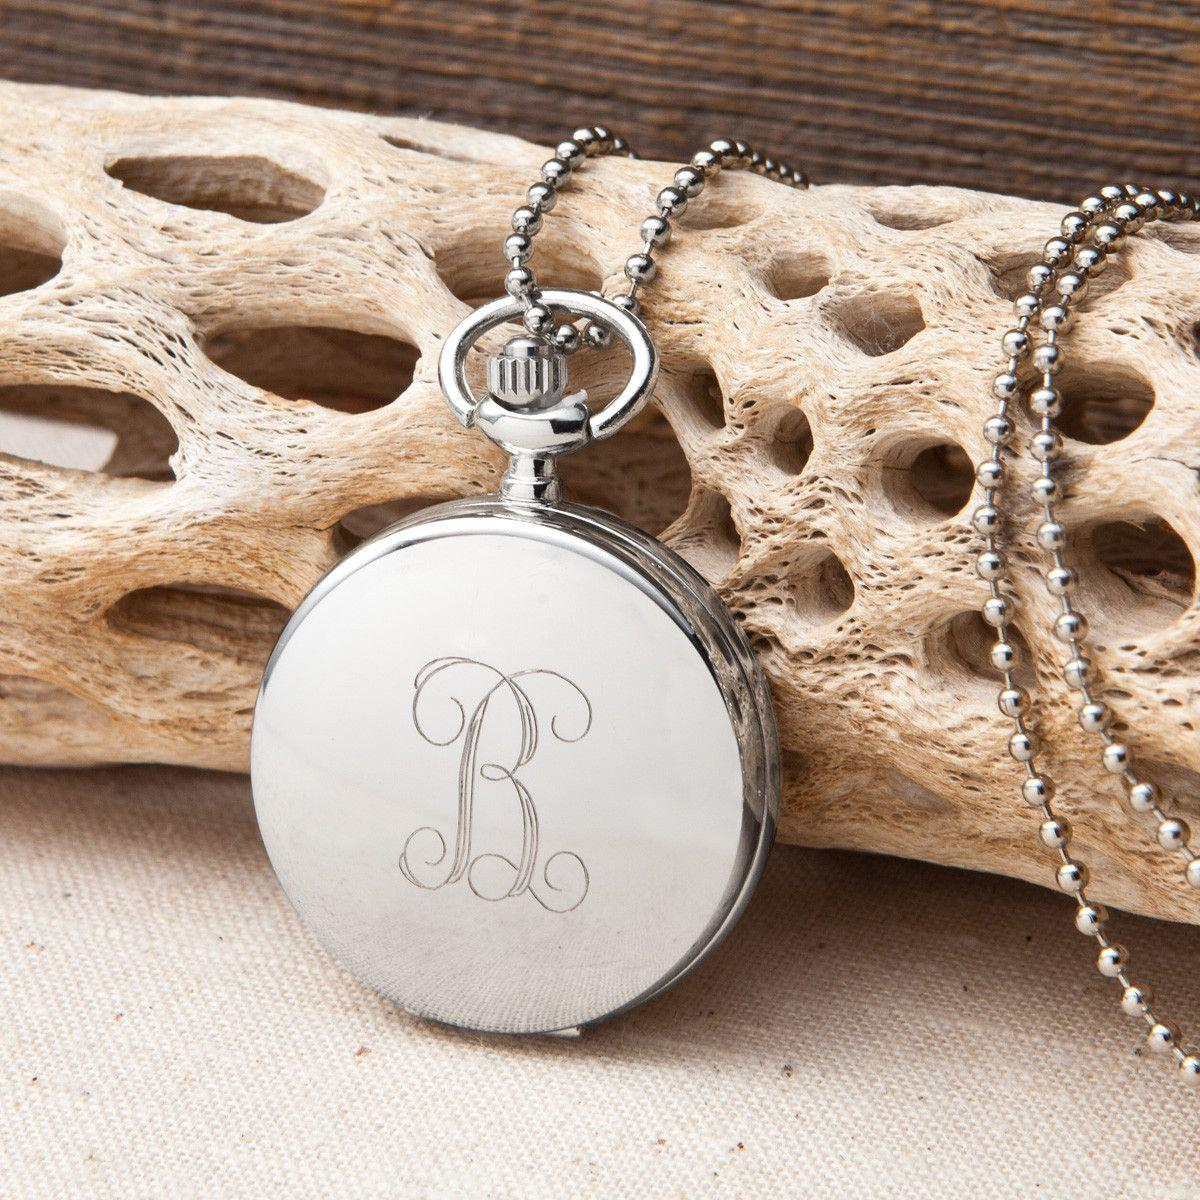 Personalized Women's Clock Pendant Necklace